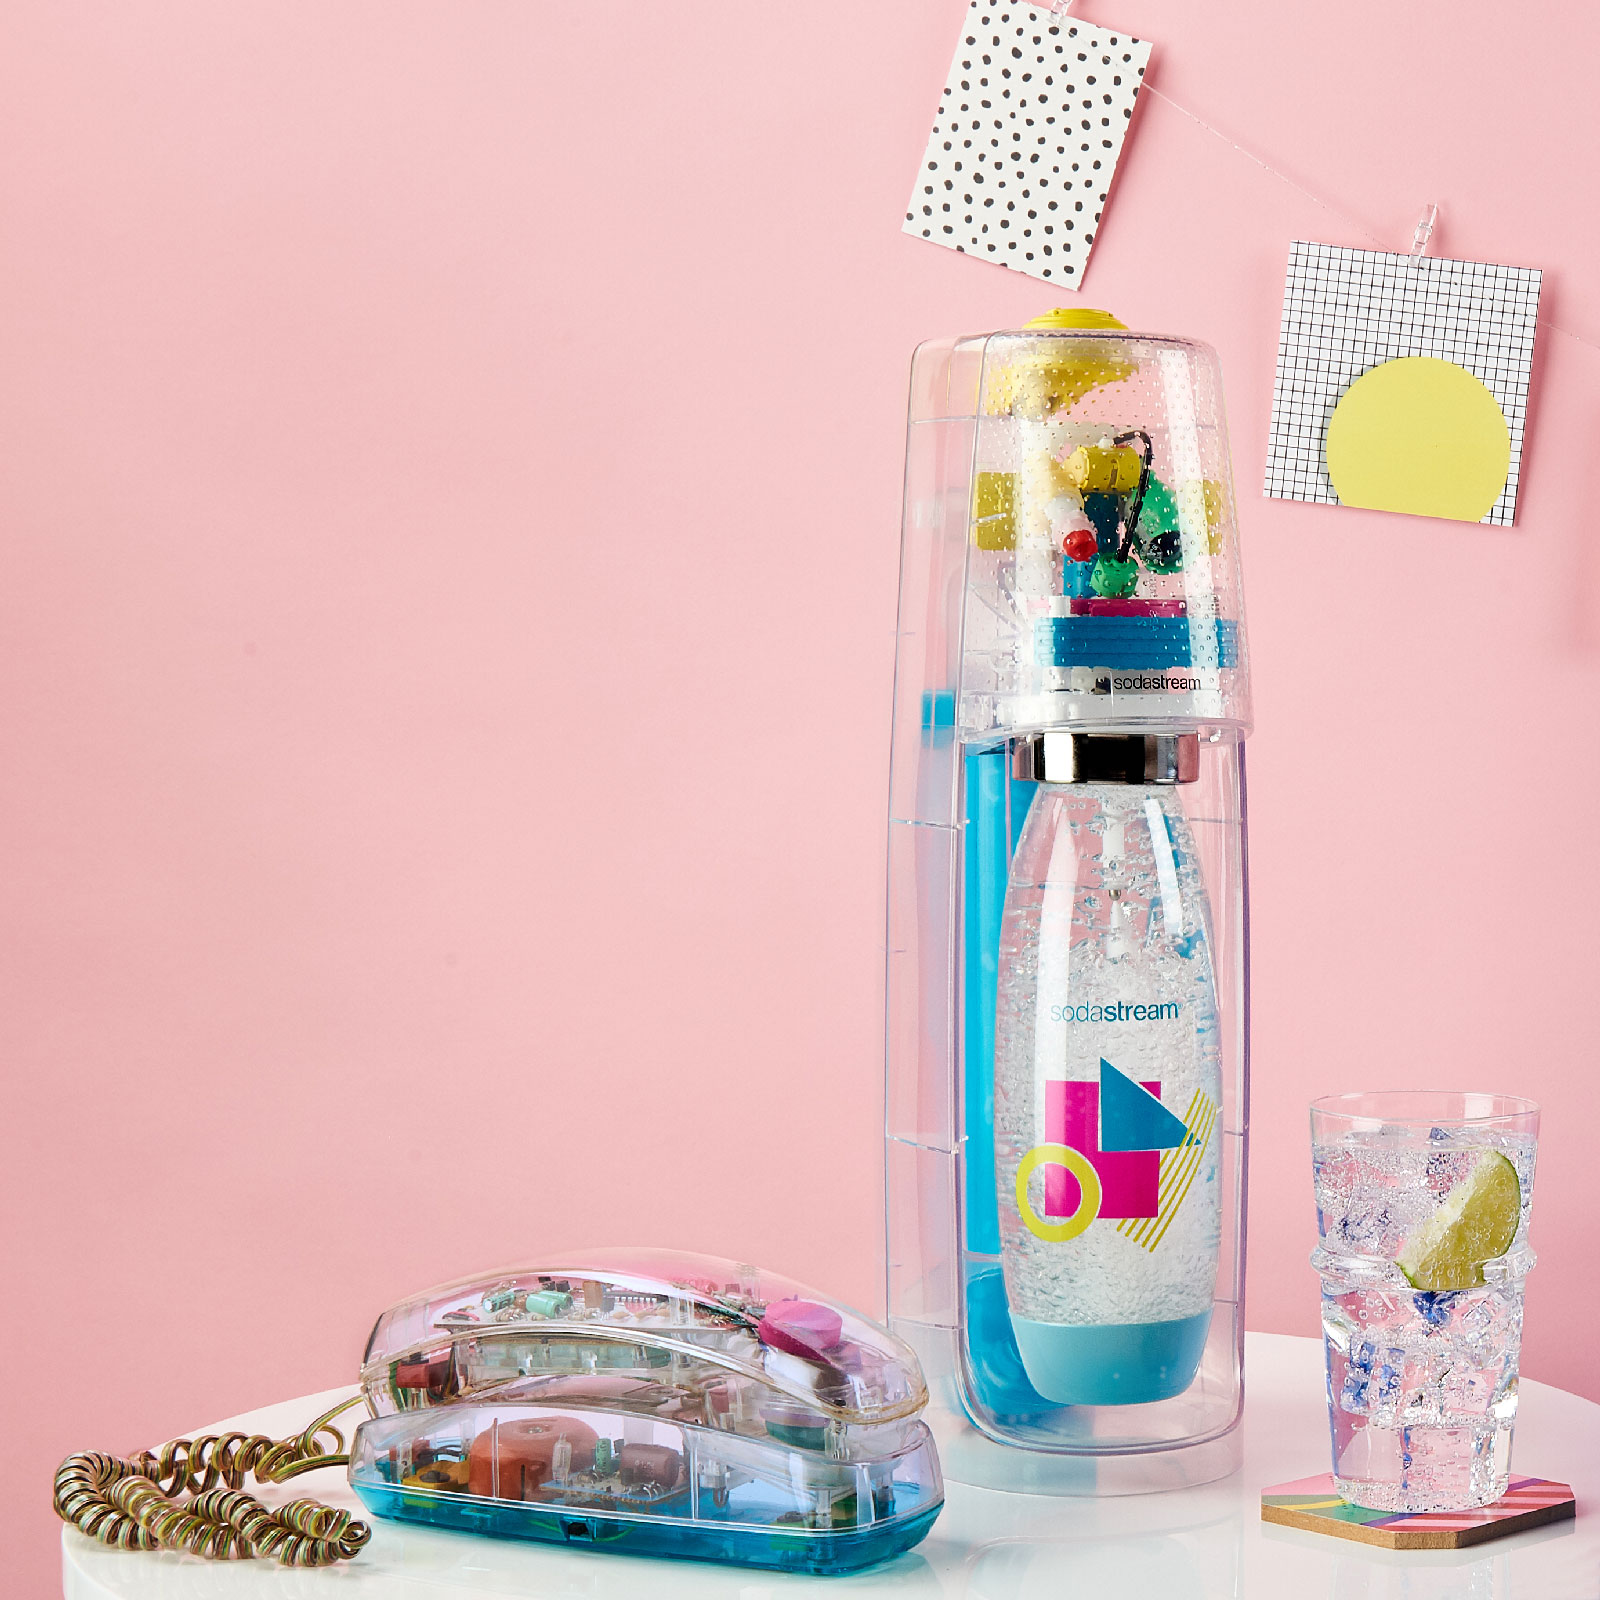 SodaStream's See-Through Model Looks Just Like That Clear Phone Every '90s Kid Wanted